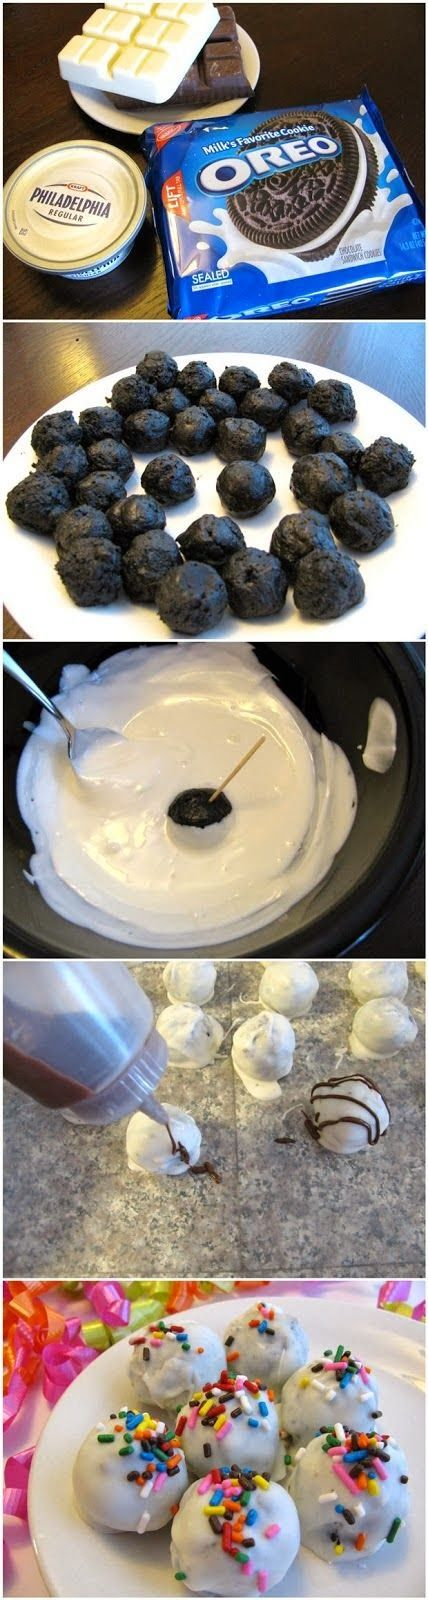 How To Oreo Balls: Try making with colored chocolate for holidays or football games! Yum!